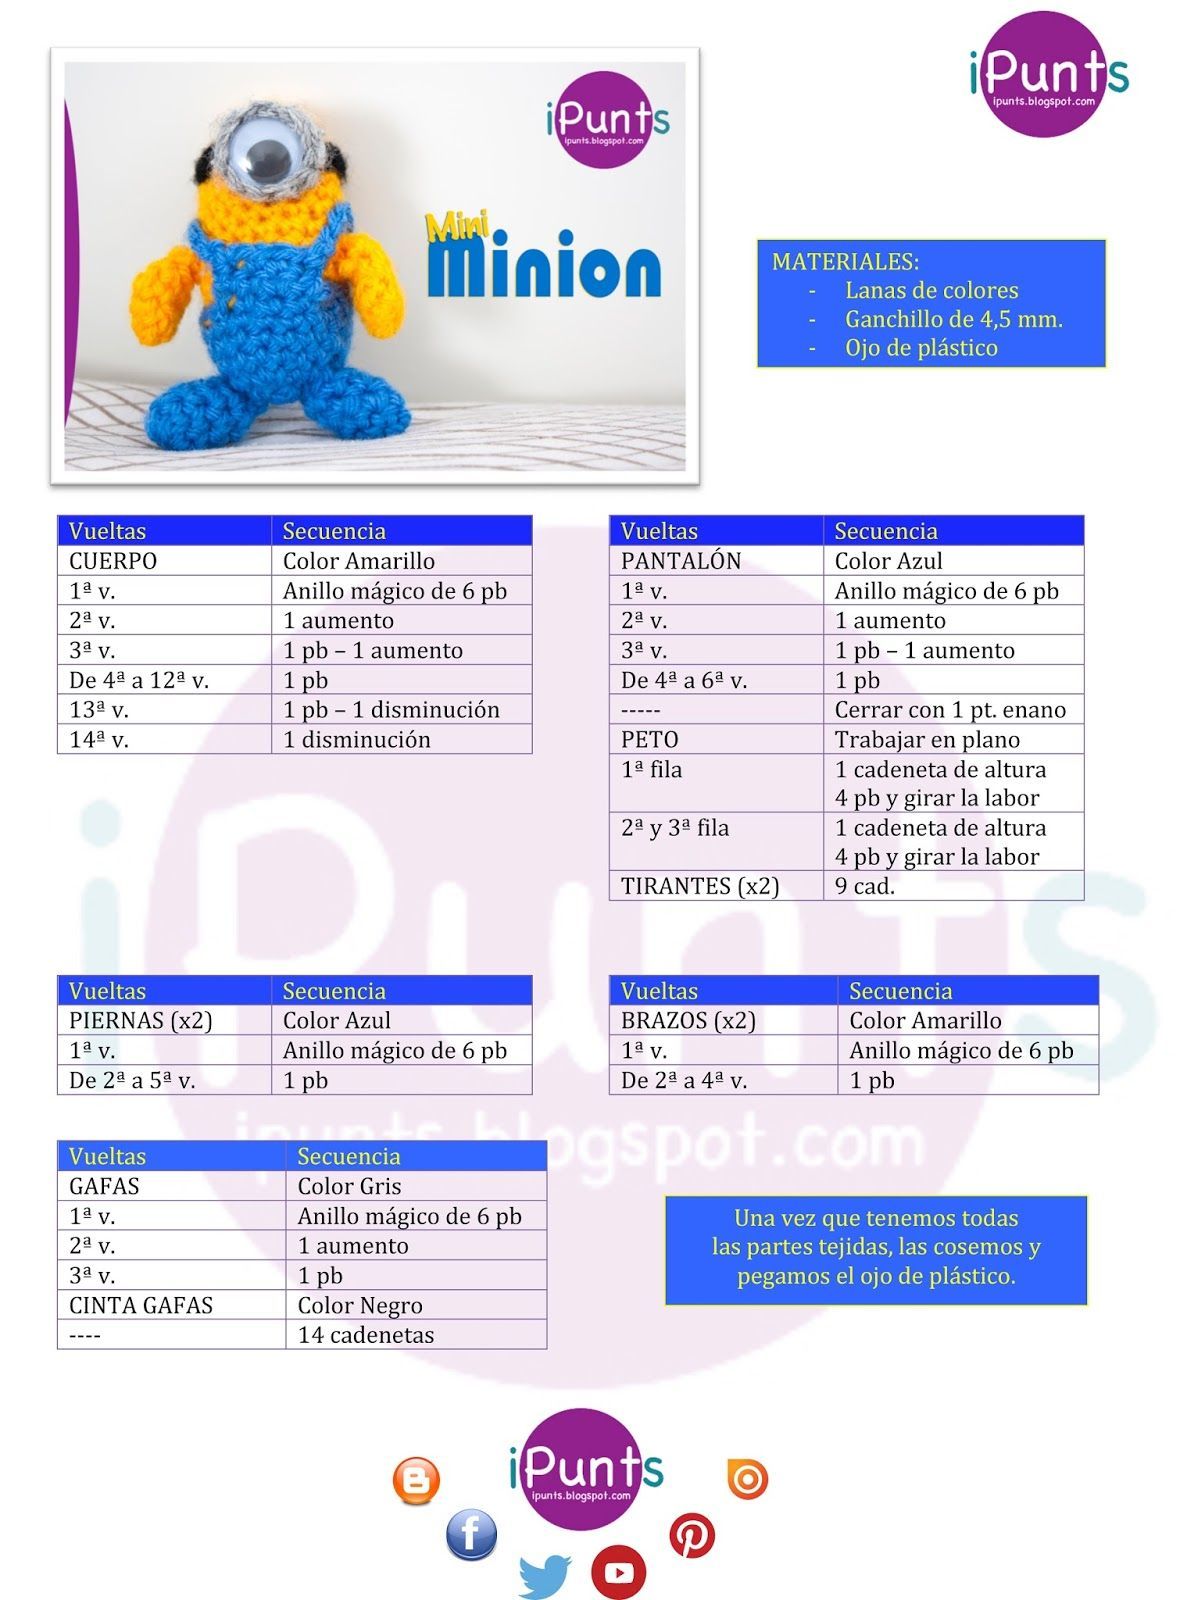 amigurumi patron minion ipunts ganchillo facil | amigurumis ...